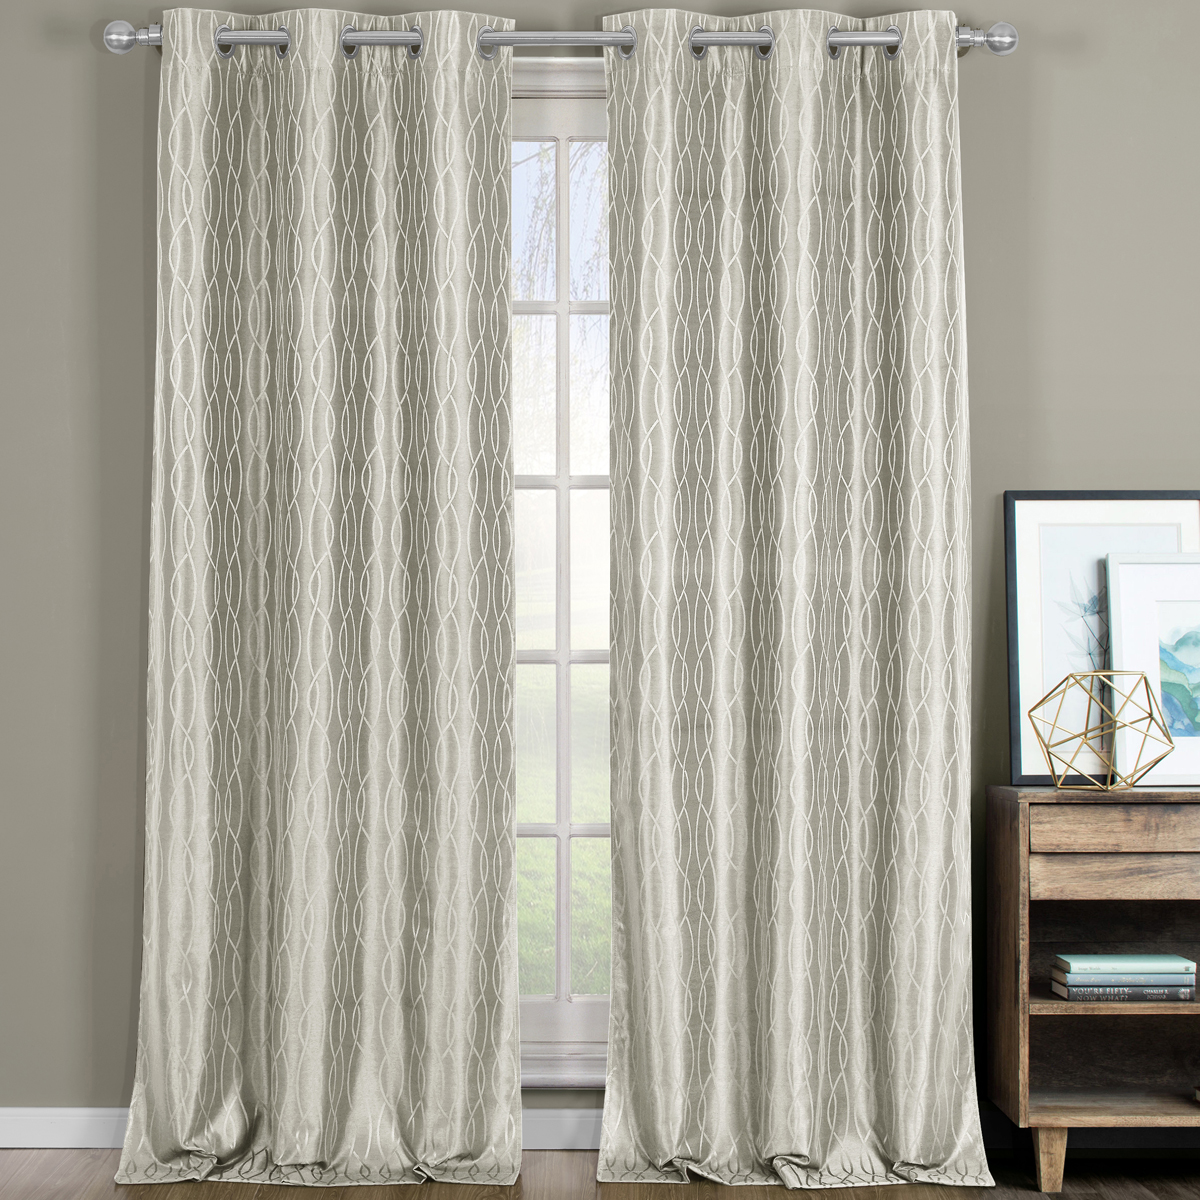 Pair Voyage Jacquard Thermal Blackout Curtain Panels With Grommets (Set of 2)76X84 - Teal